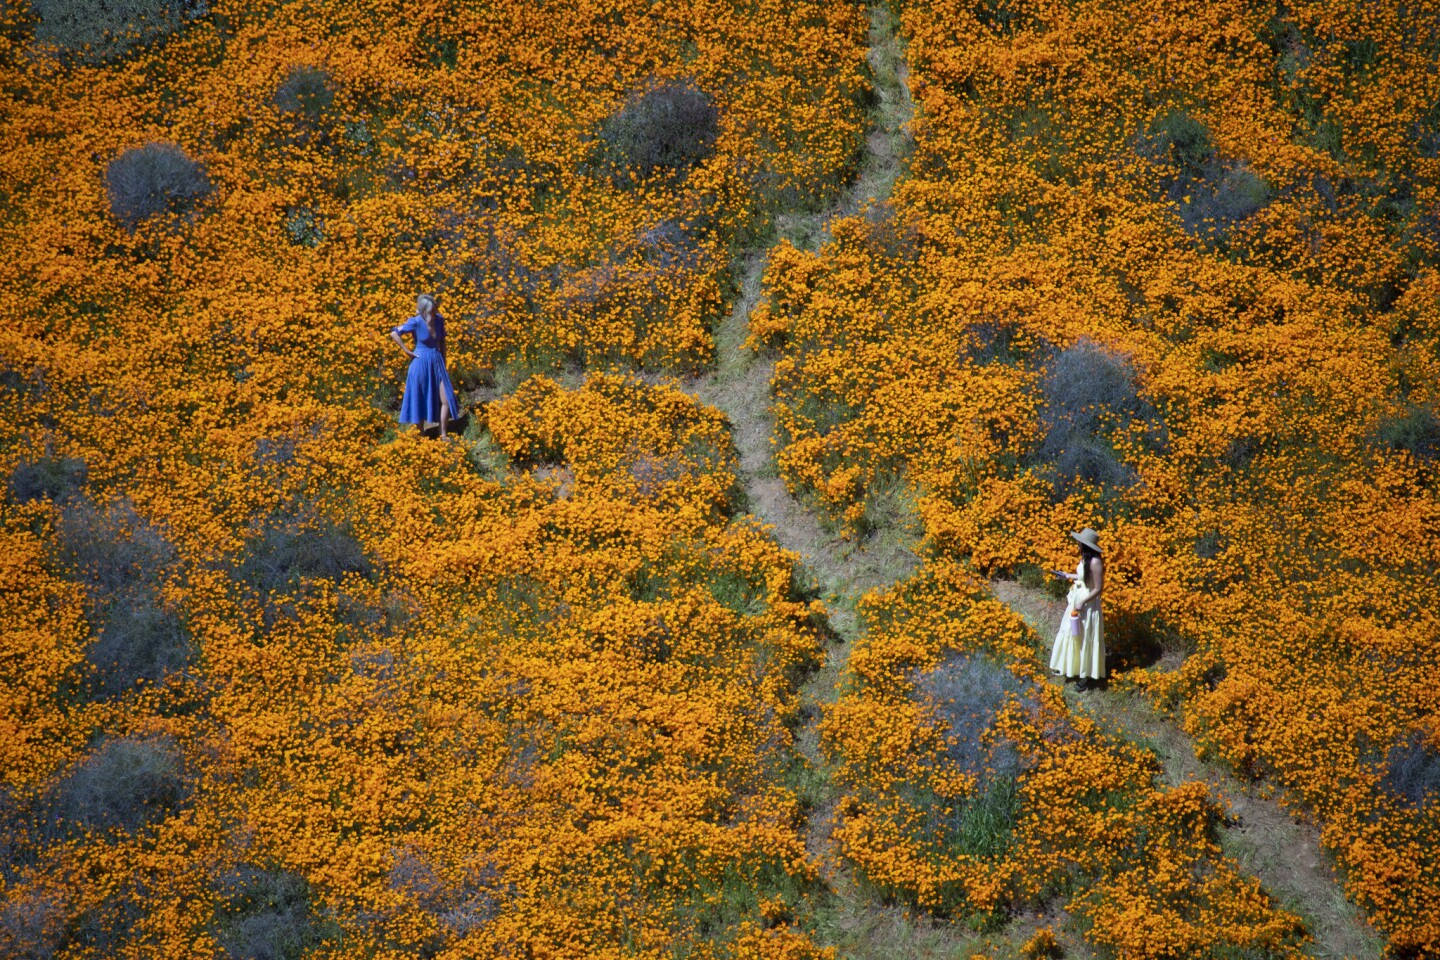 Surrounded by the Super Bloom, visitors pose for photos in the middle of the Lake Elsinore Poppy Fields in Walker Canyon. One day after Lake Elsinore announced it was closing access to the popular poppy fields in Walker Canyon, city officials reopened the entrance to the flowered hillsides, which have been overrun during this year's super bloom.